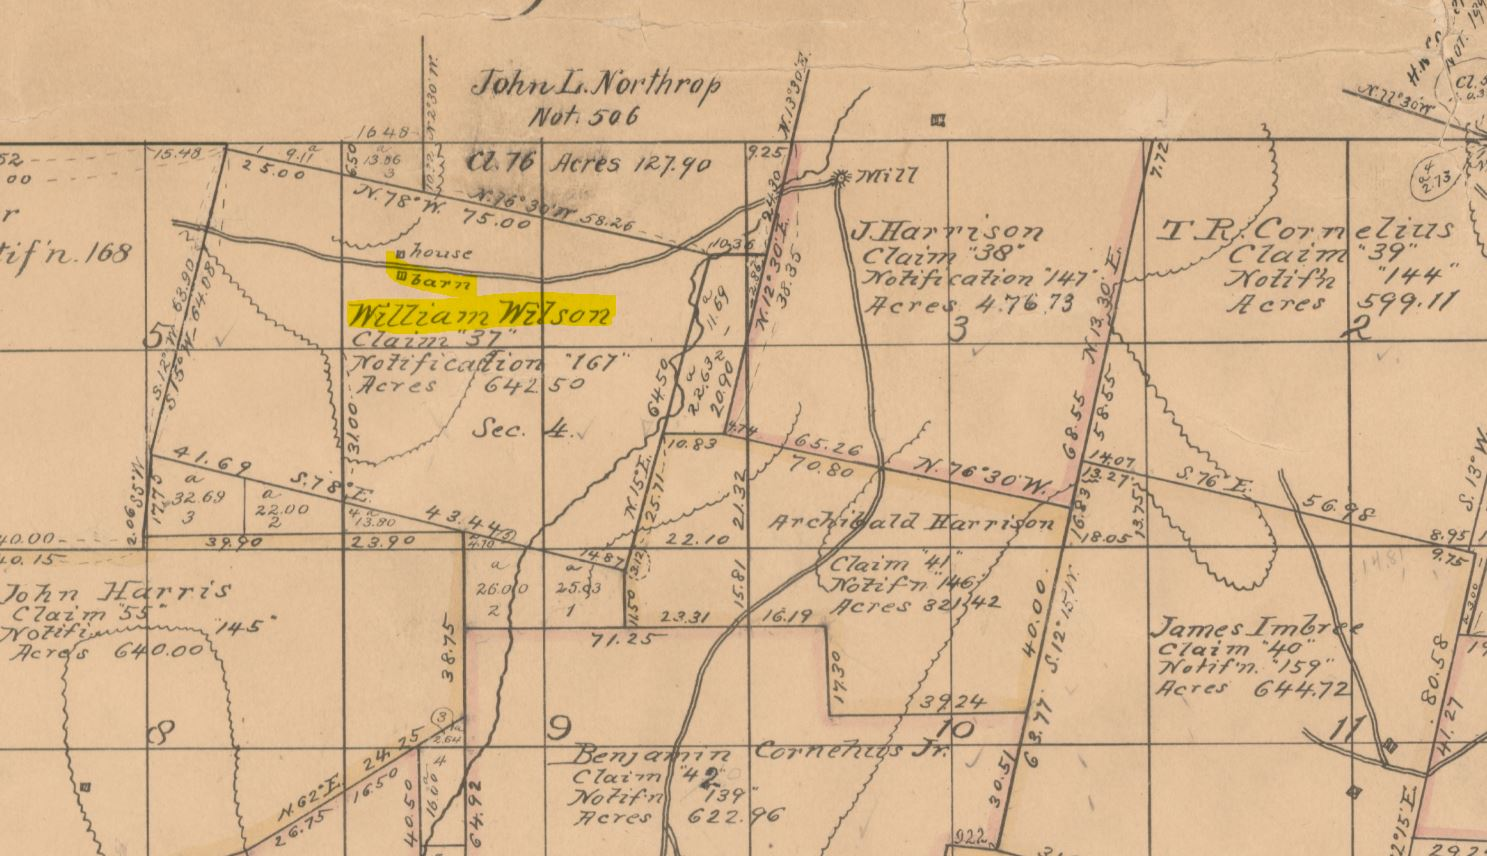 Seen here in the 1851 Survey map is the William Wilson Claim of 642.50 Acres and the surveyor clearly is showing the location of their home and barn.  Some of their neighbors names are well known today.